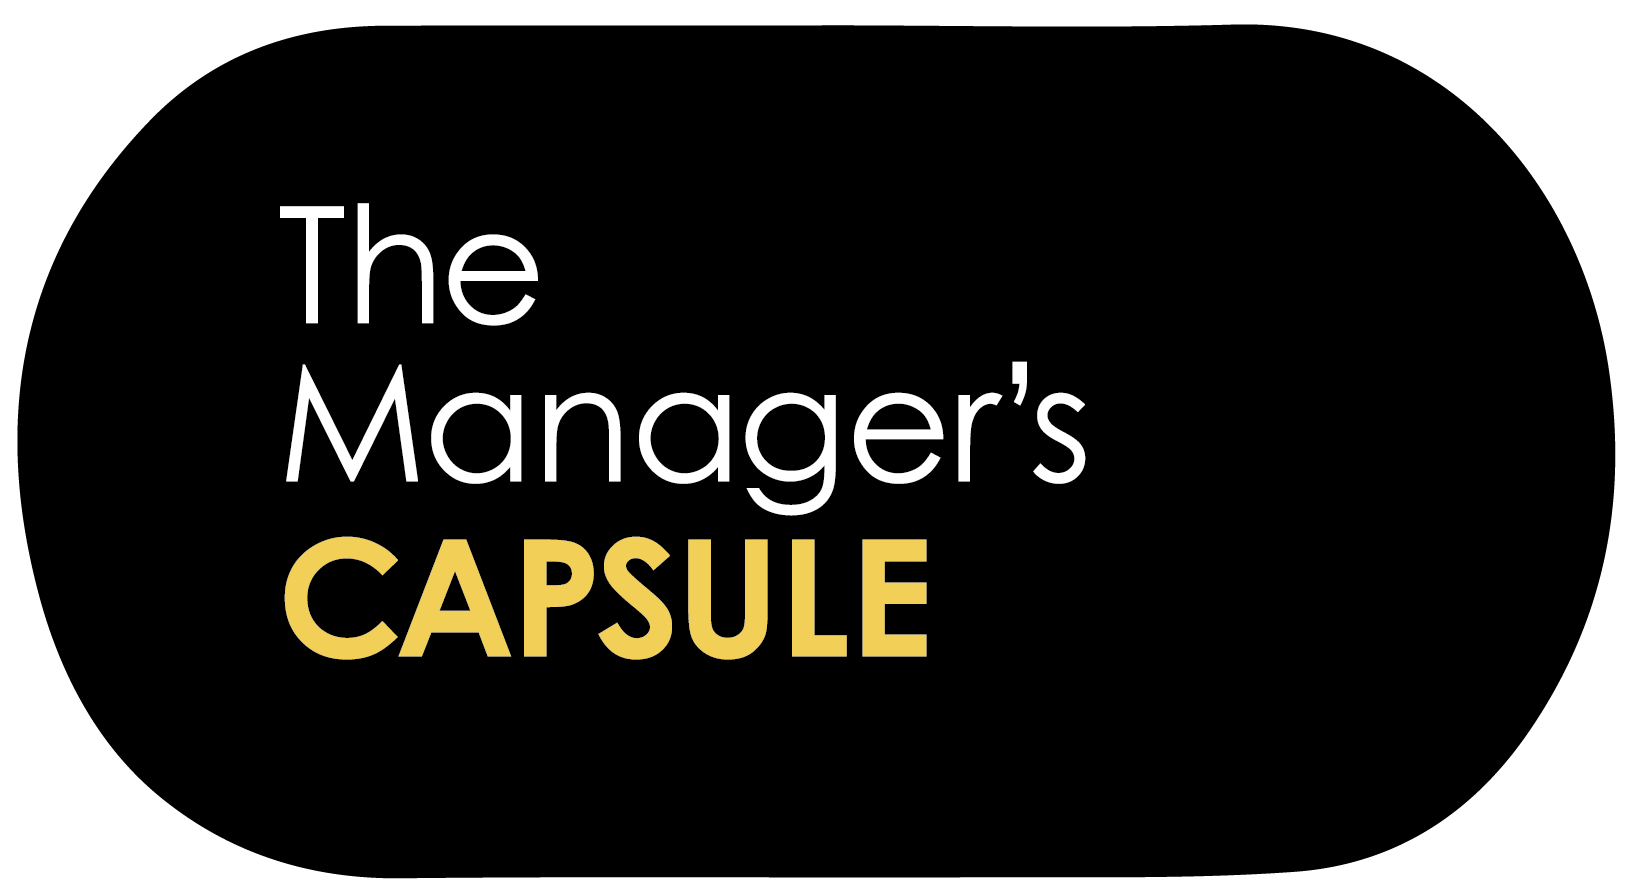 Manager's capsule